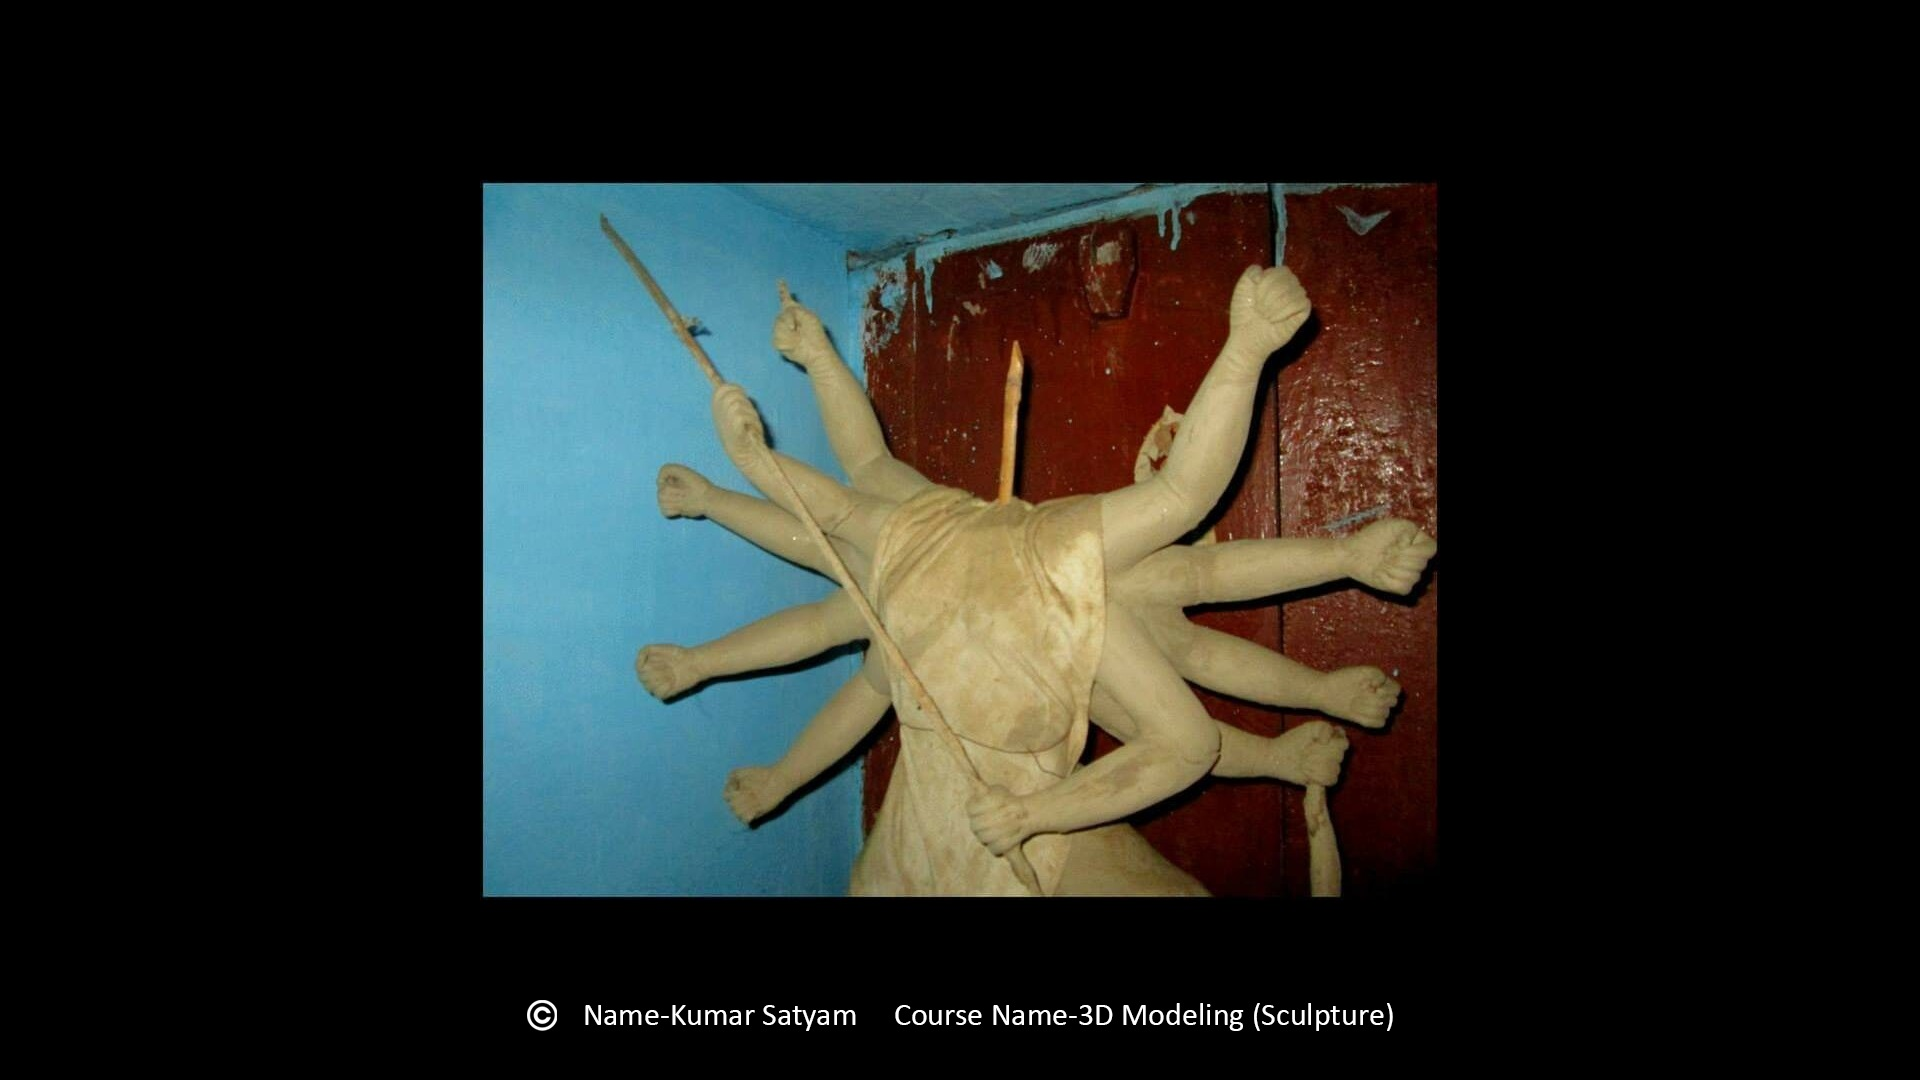 Reliance Education - Satyam Kumar - 3D Modelling - Clay Art